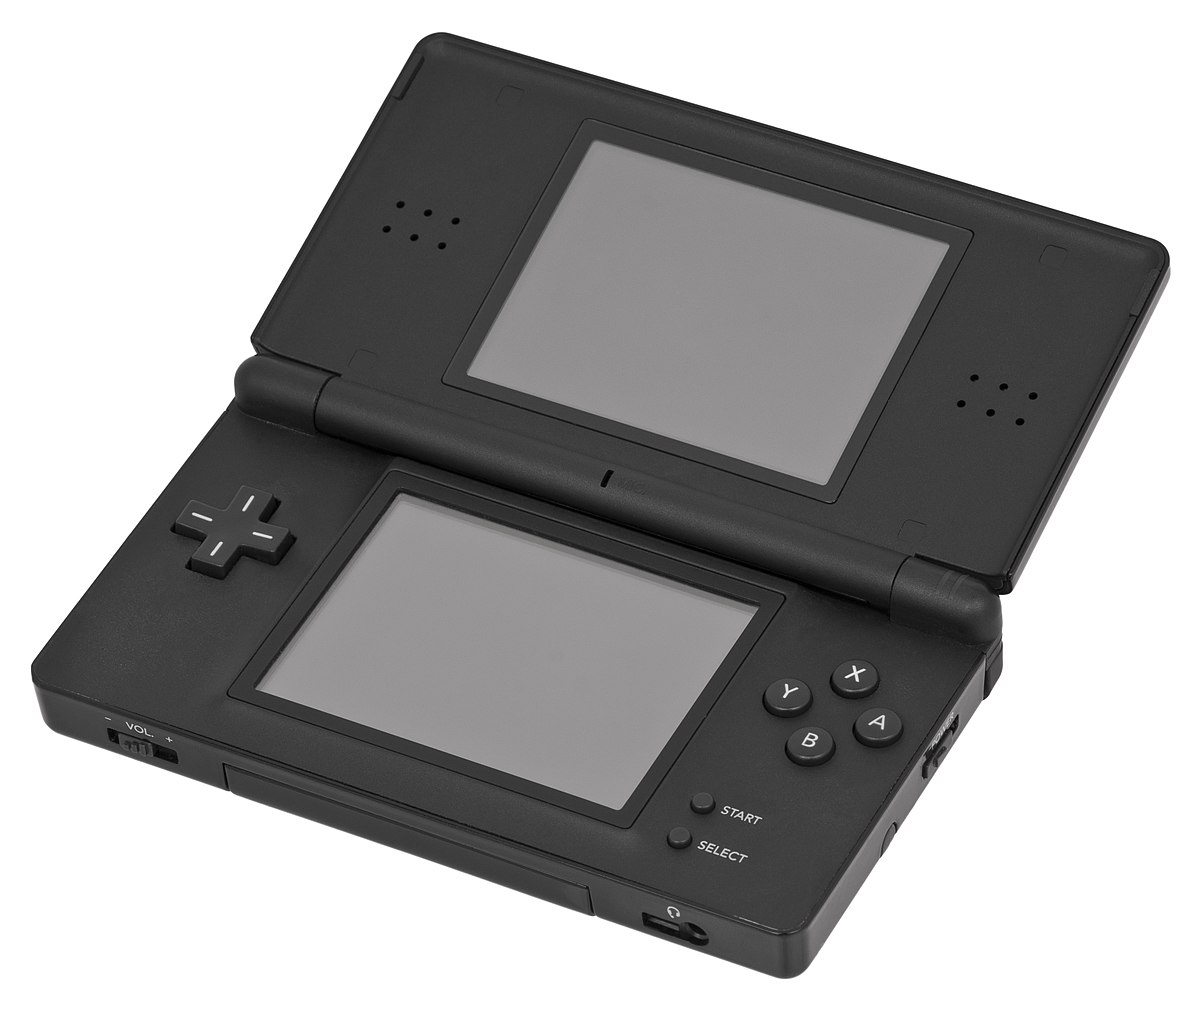 A brief buying guide for the original Nintendo DS